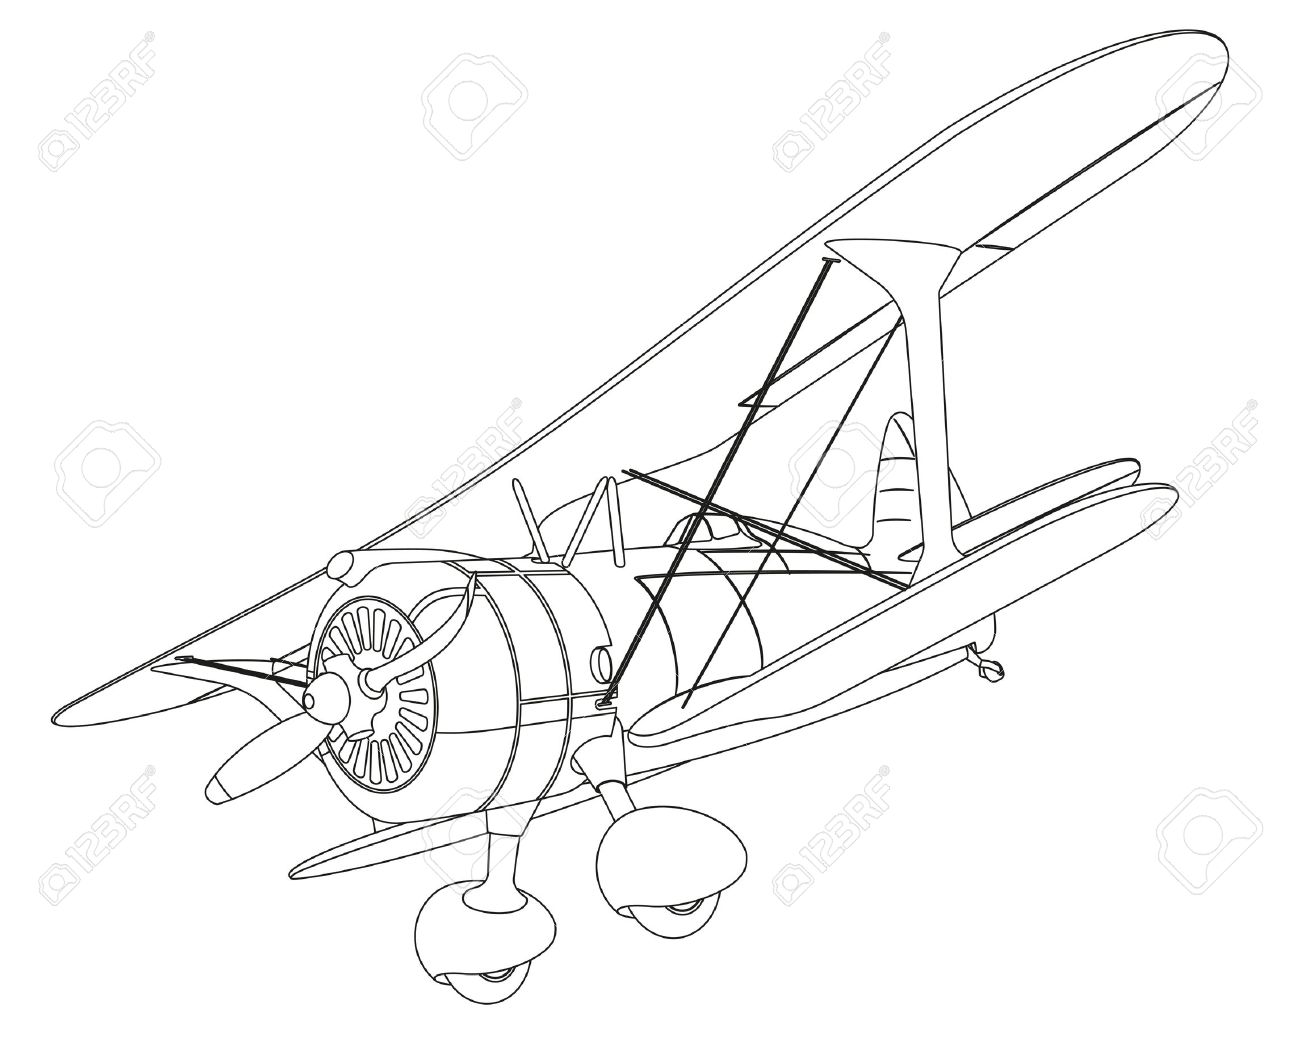 plane drawing on white background. illustration clip art Stock Vector - 29303289